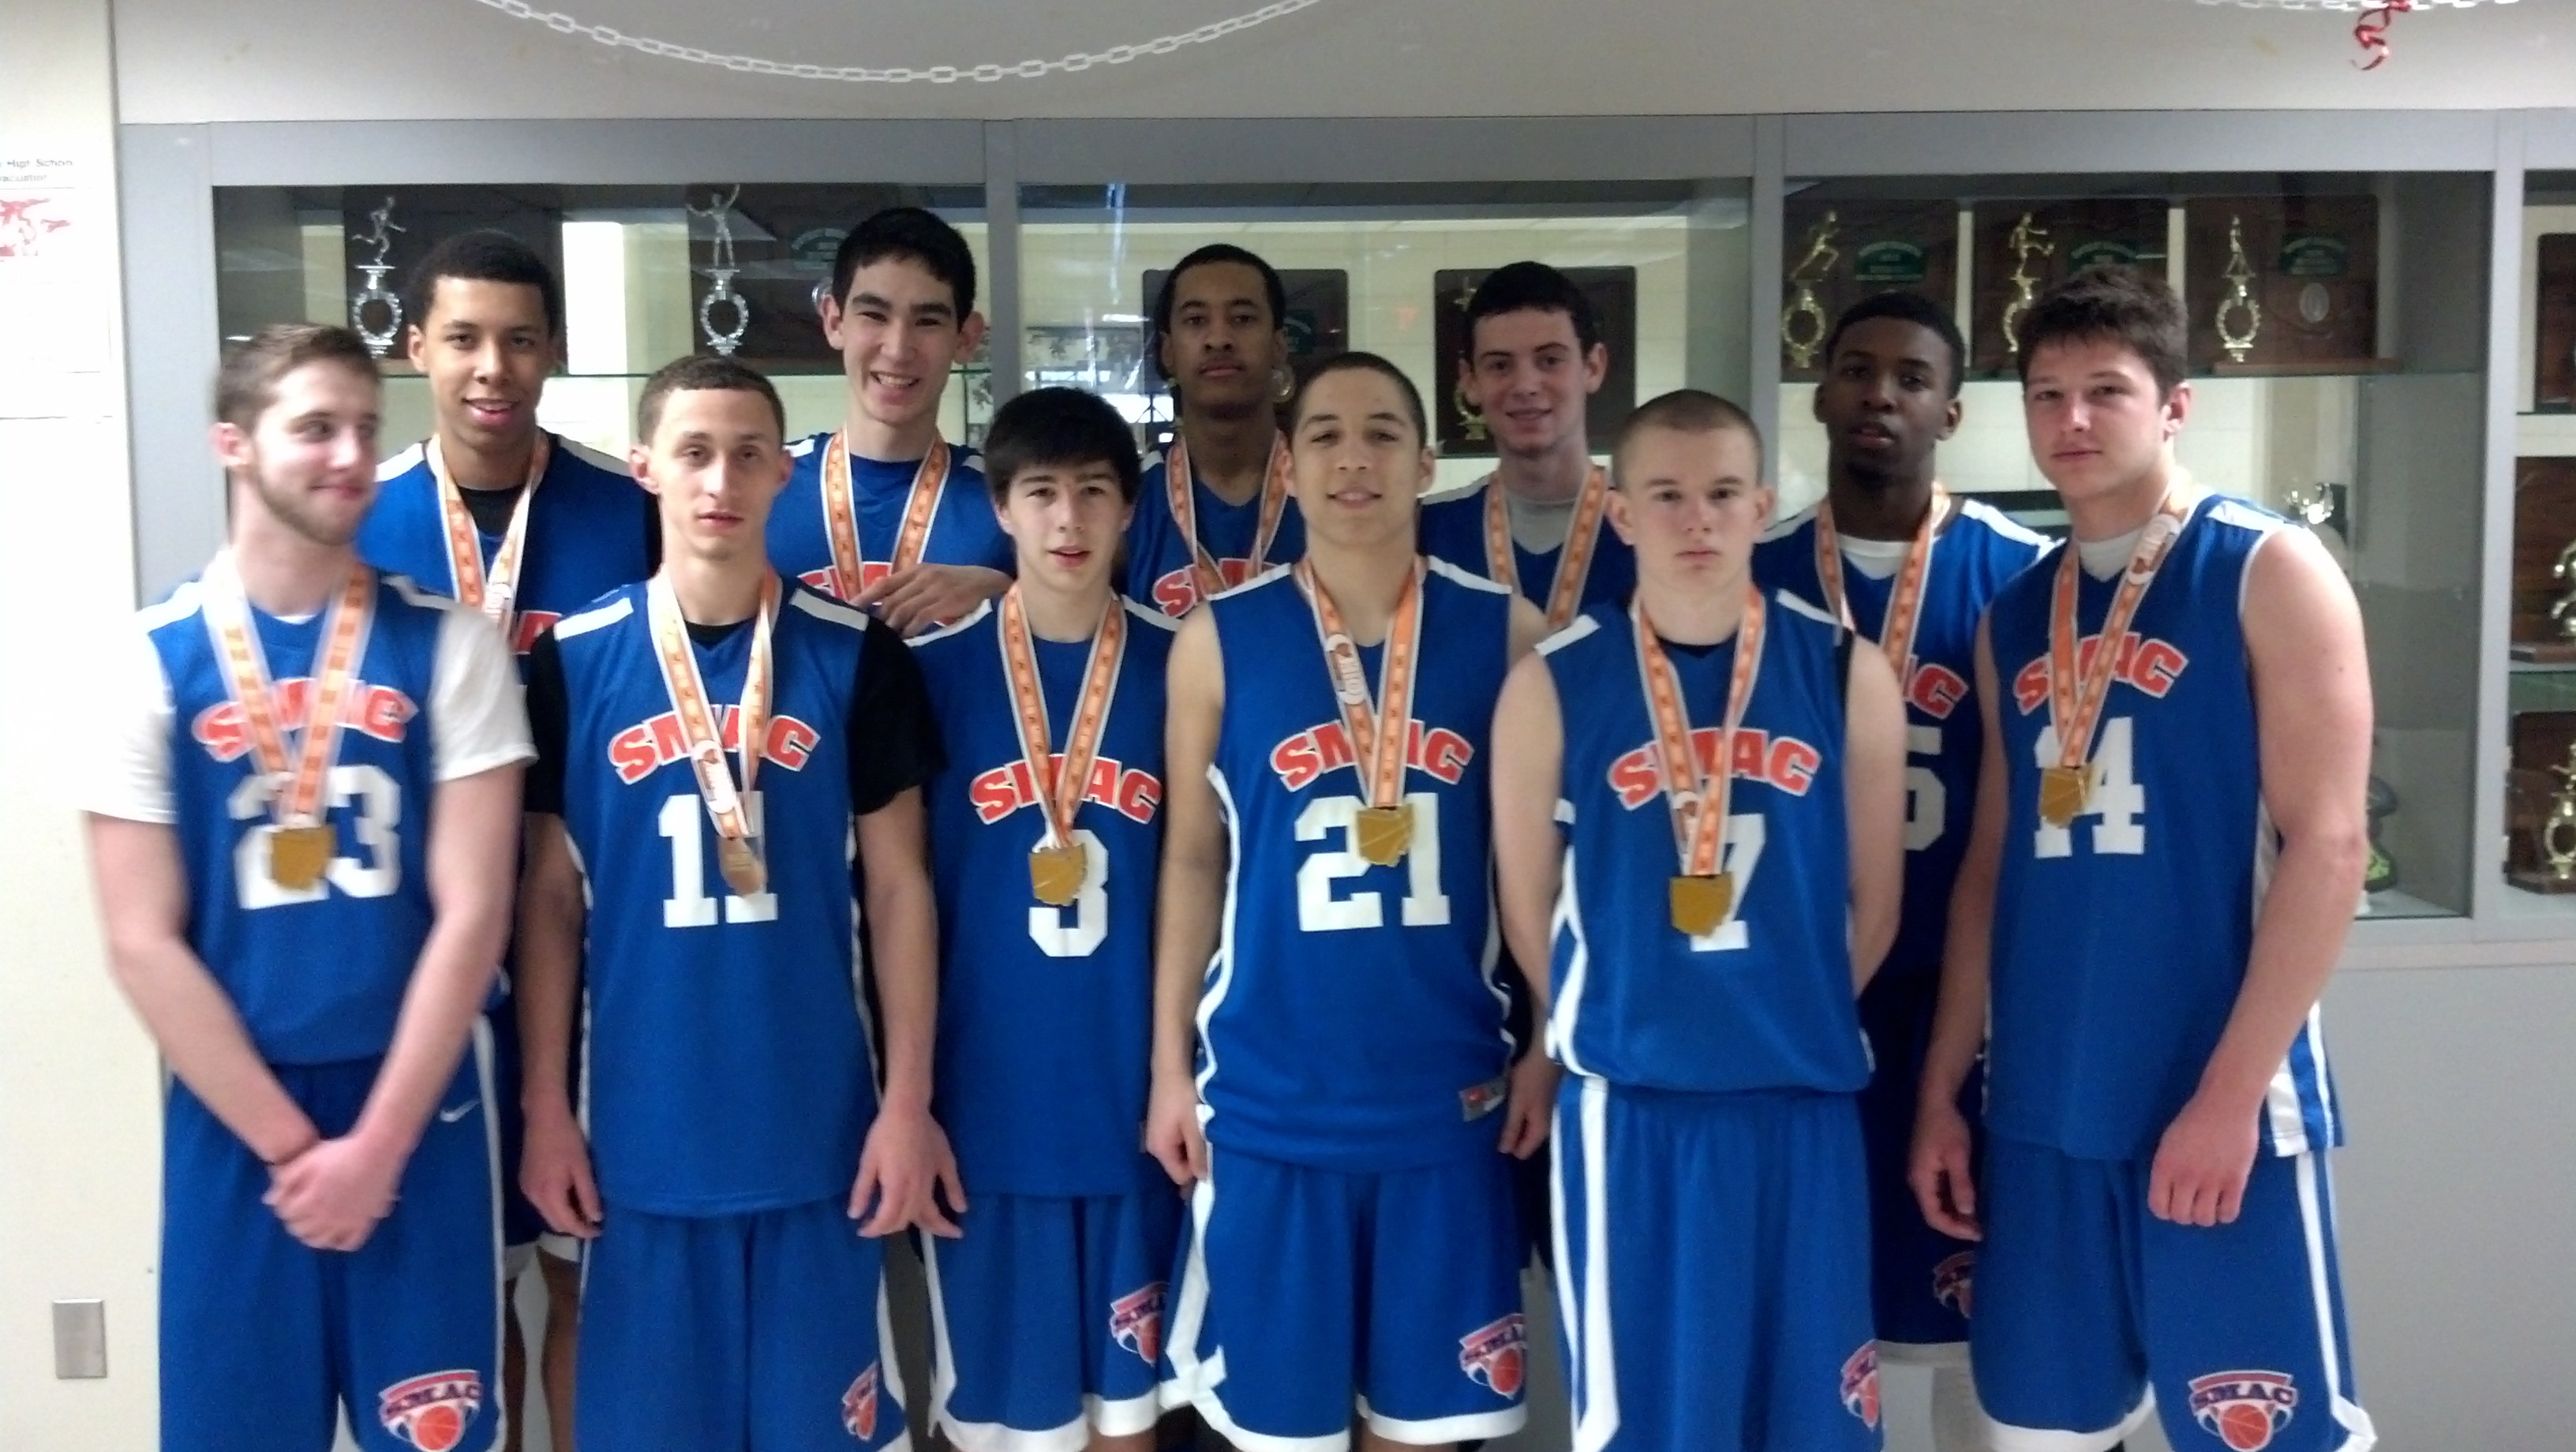 spring run and jump 11th grade champs SMAC REDDY